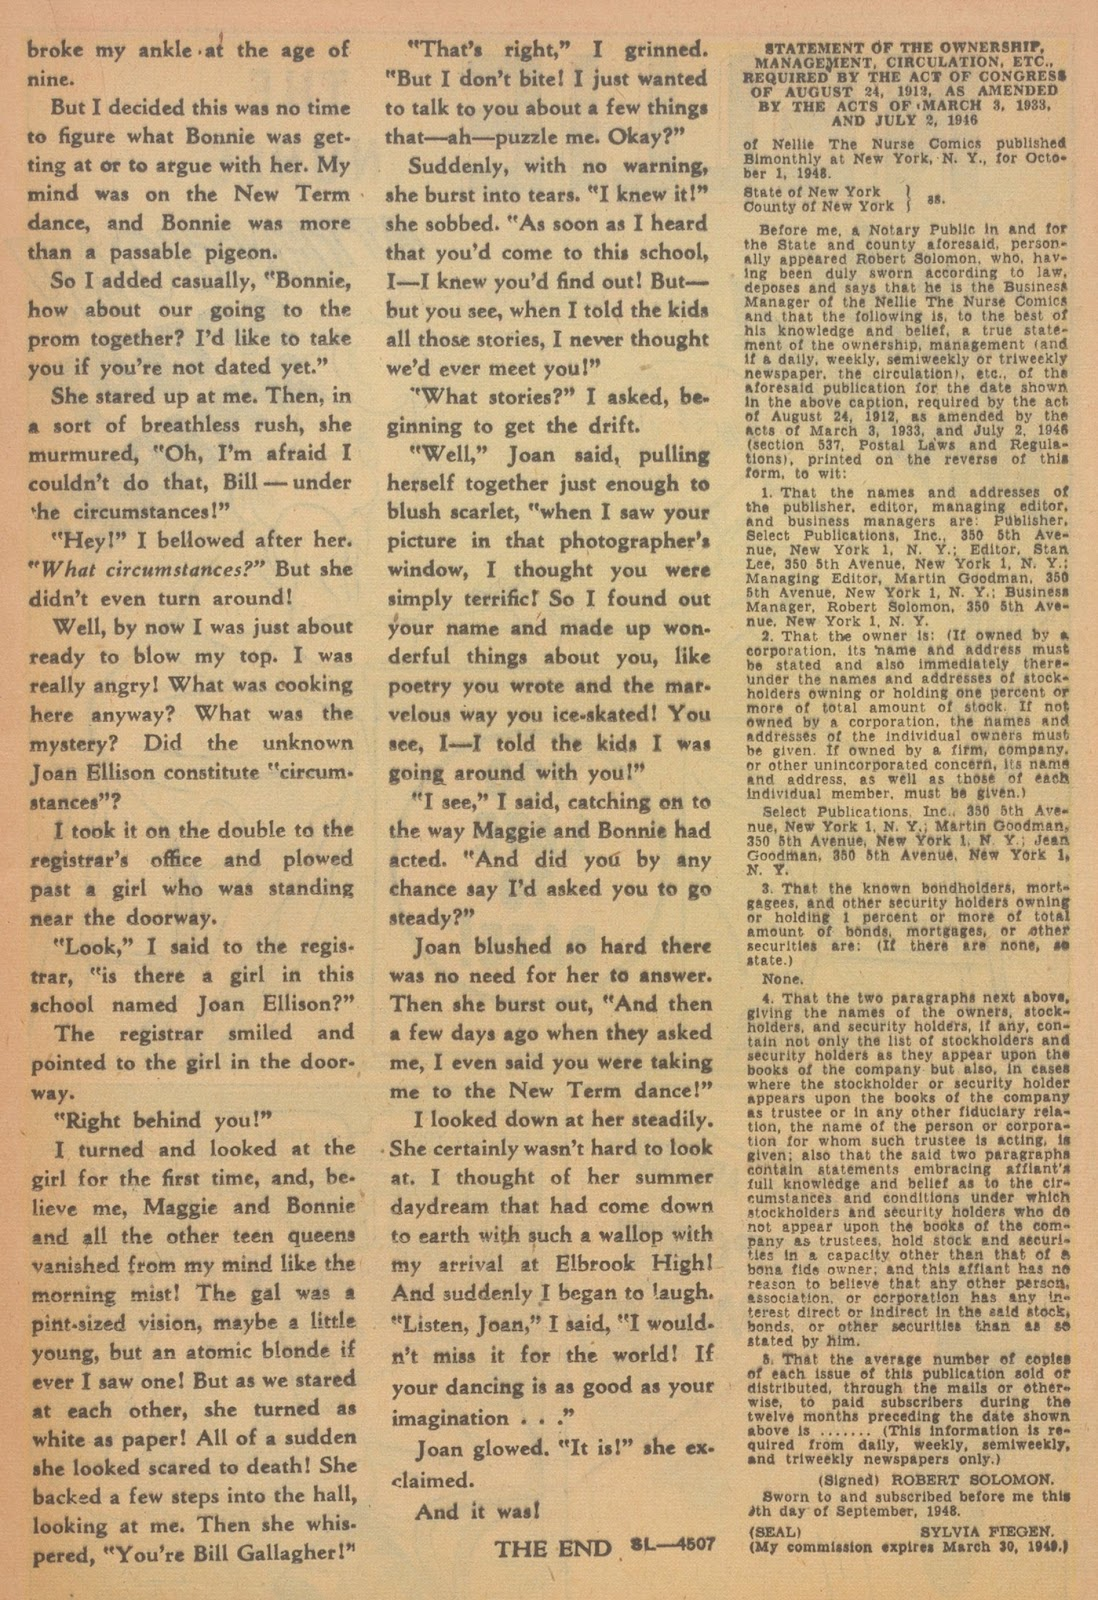 Read online Nellie The Nurse (1945) comic -  Issue #18 - 25